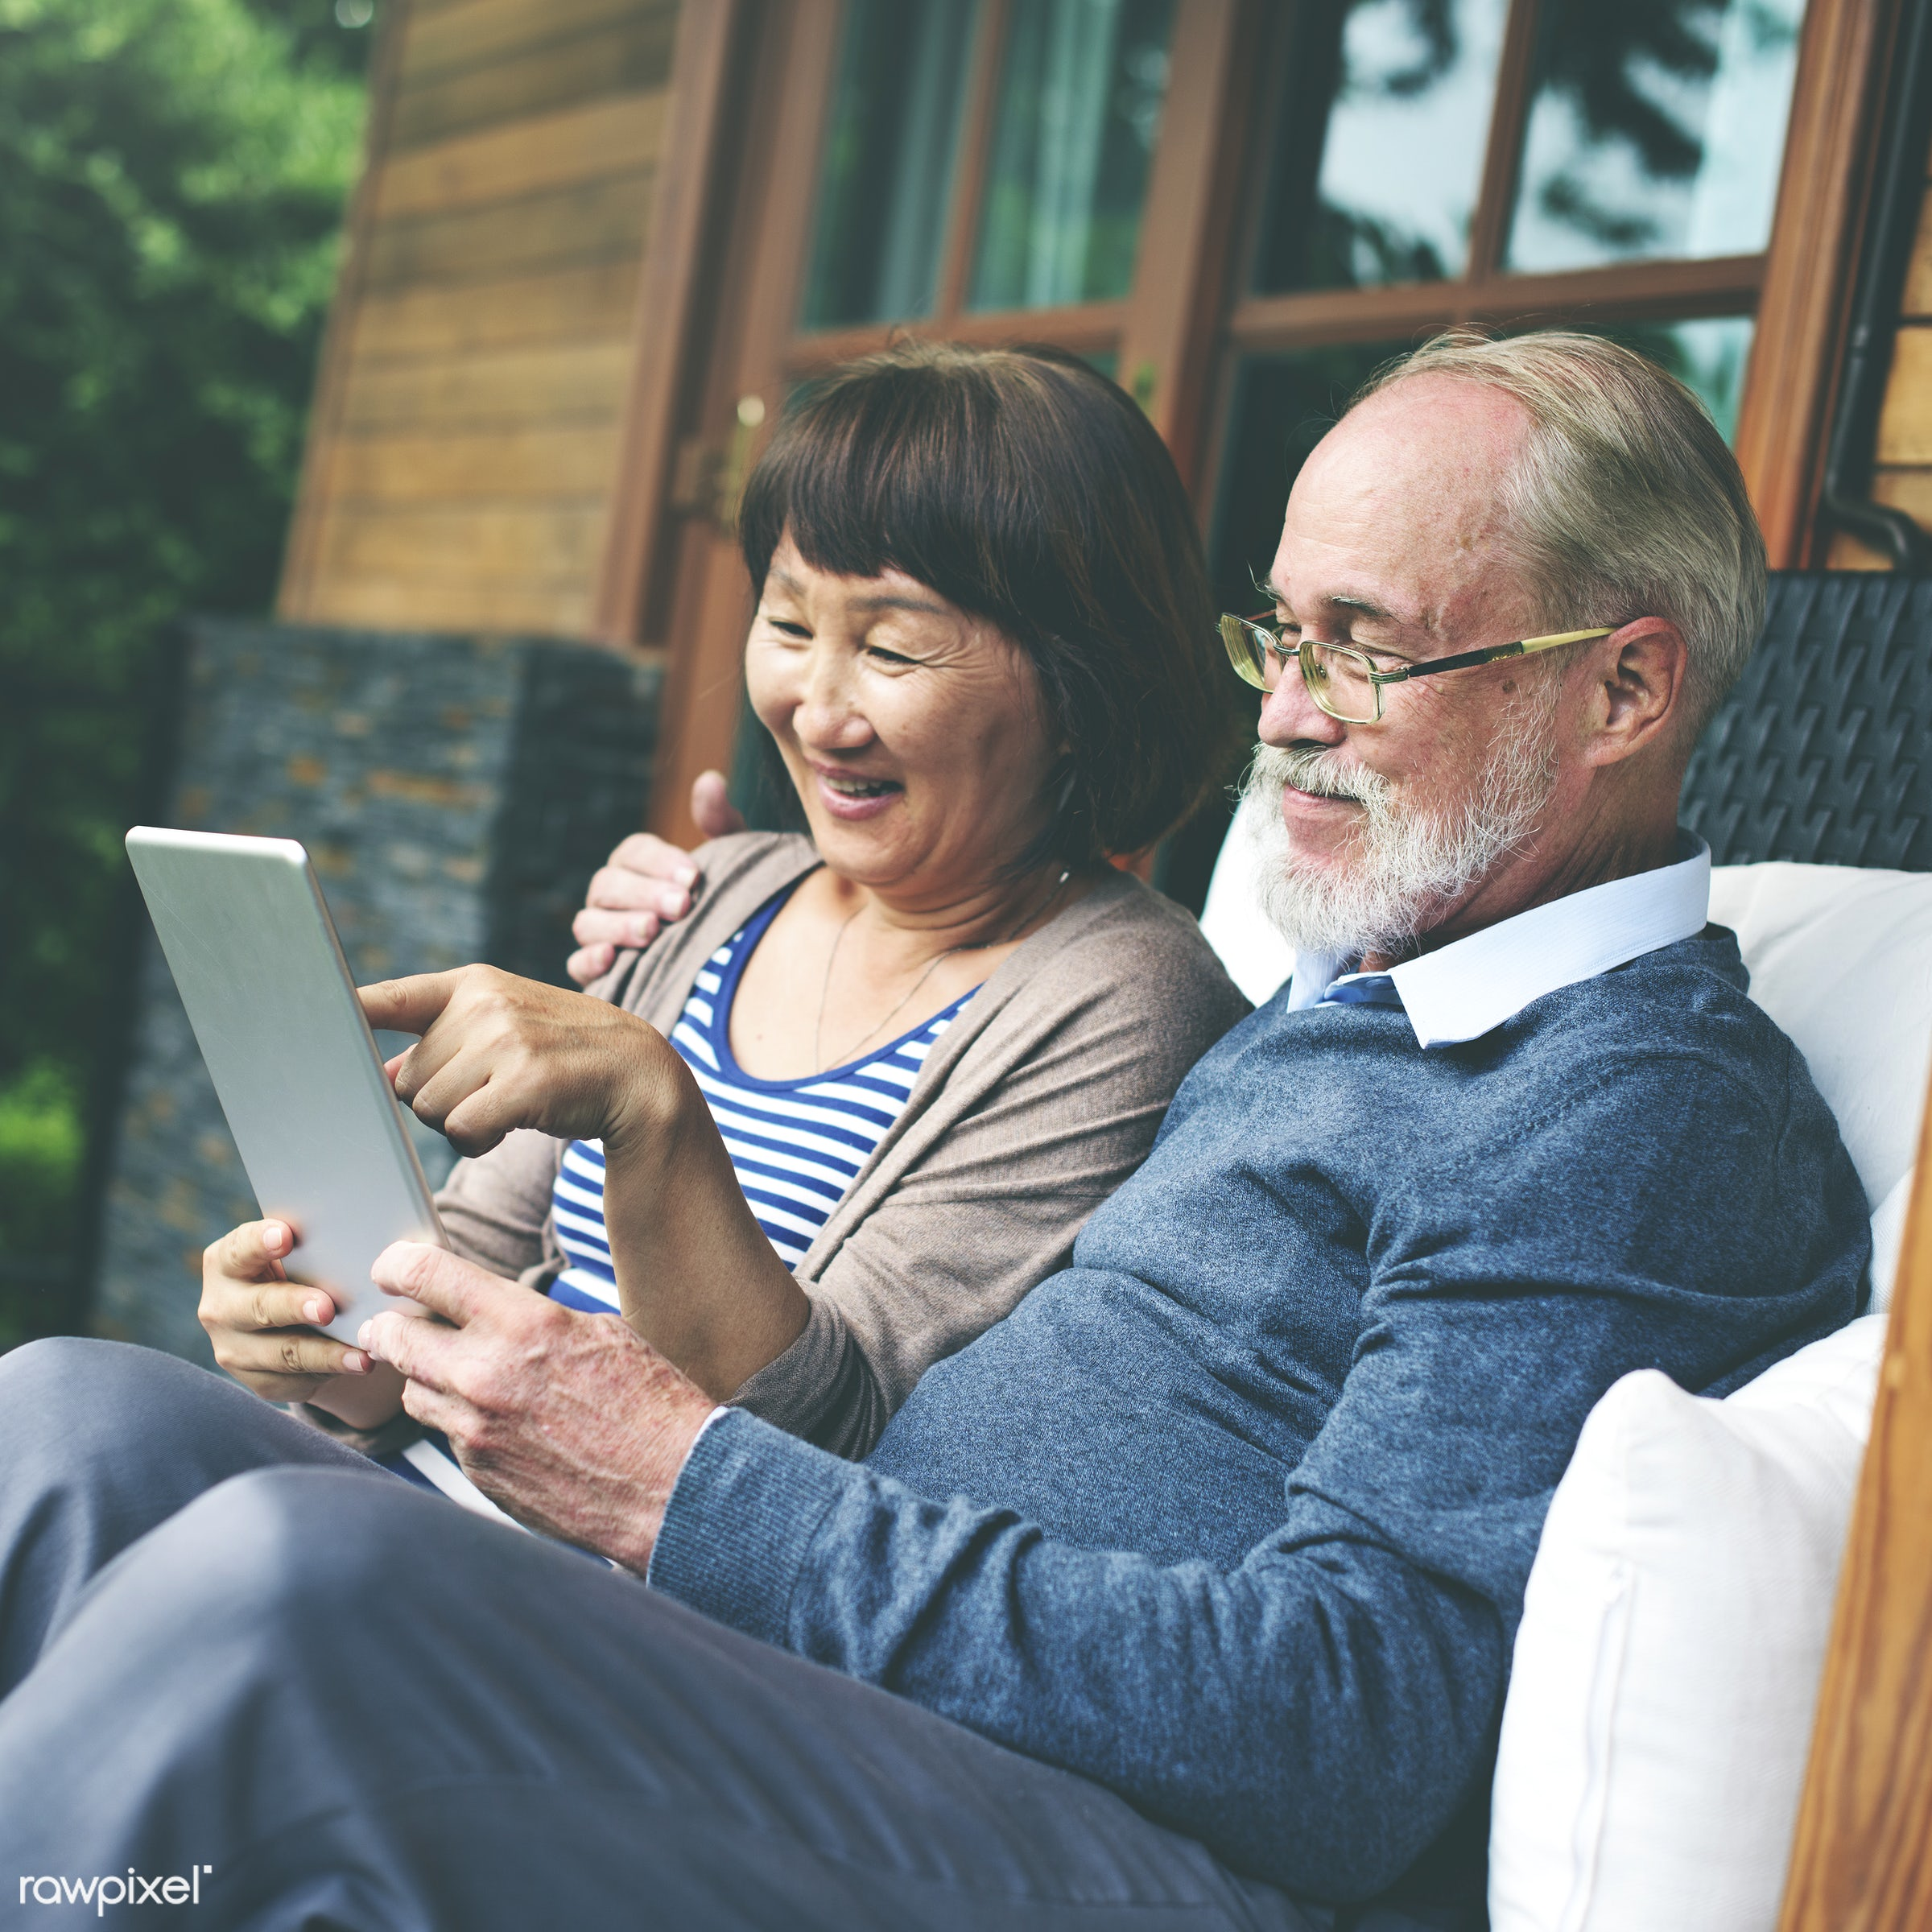 dating, adult, bonding, chair, cheerful, couple, device, digital, door, female, garden, grandfather, grandmother, happiness...